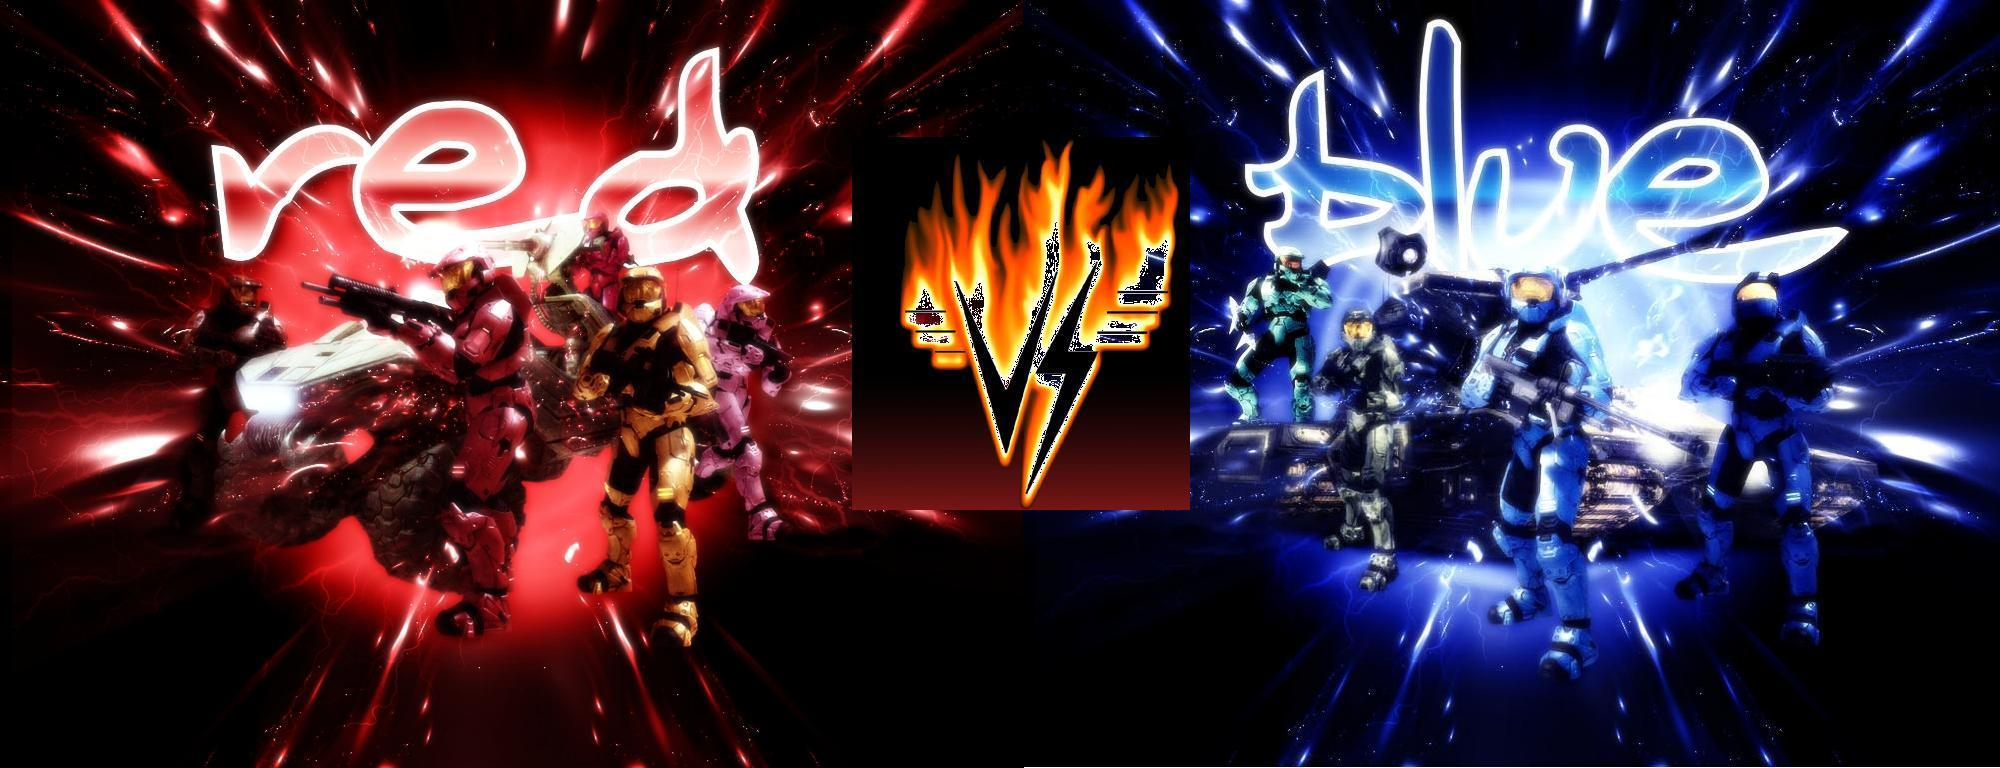 Awesome Pokemon Red Vs Blue Wallpapers Wallpaper Cave